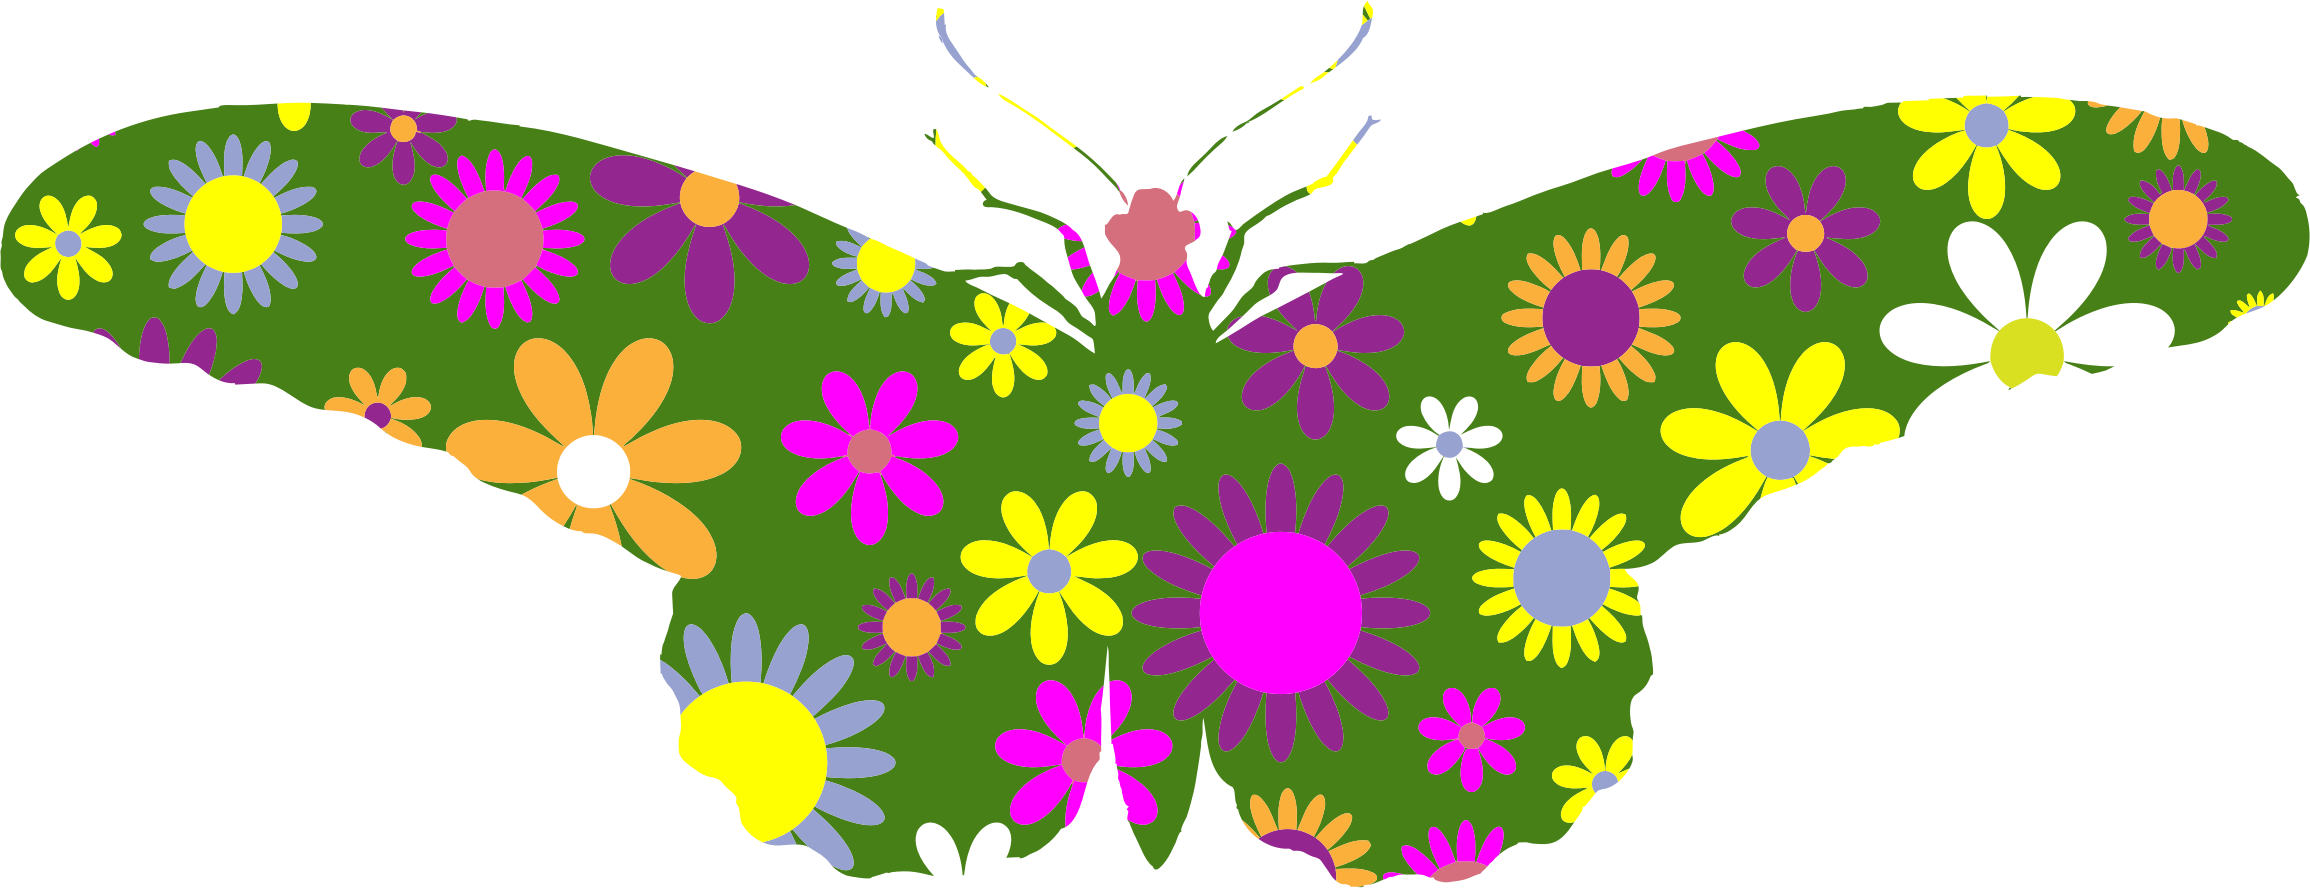 Retro clipart vintage. Floral butterfly illustration icons